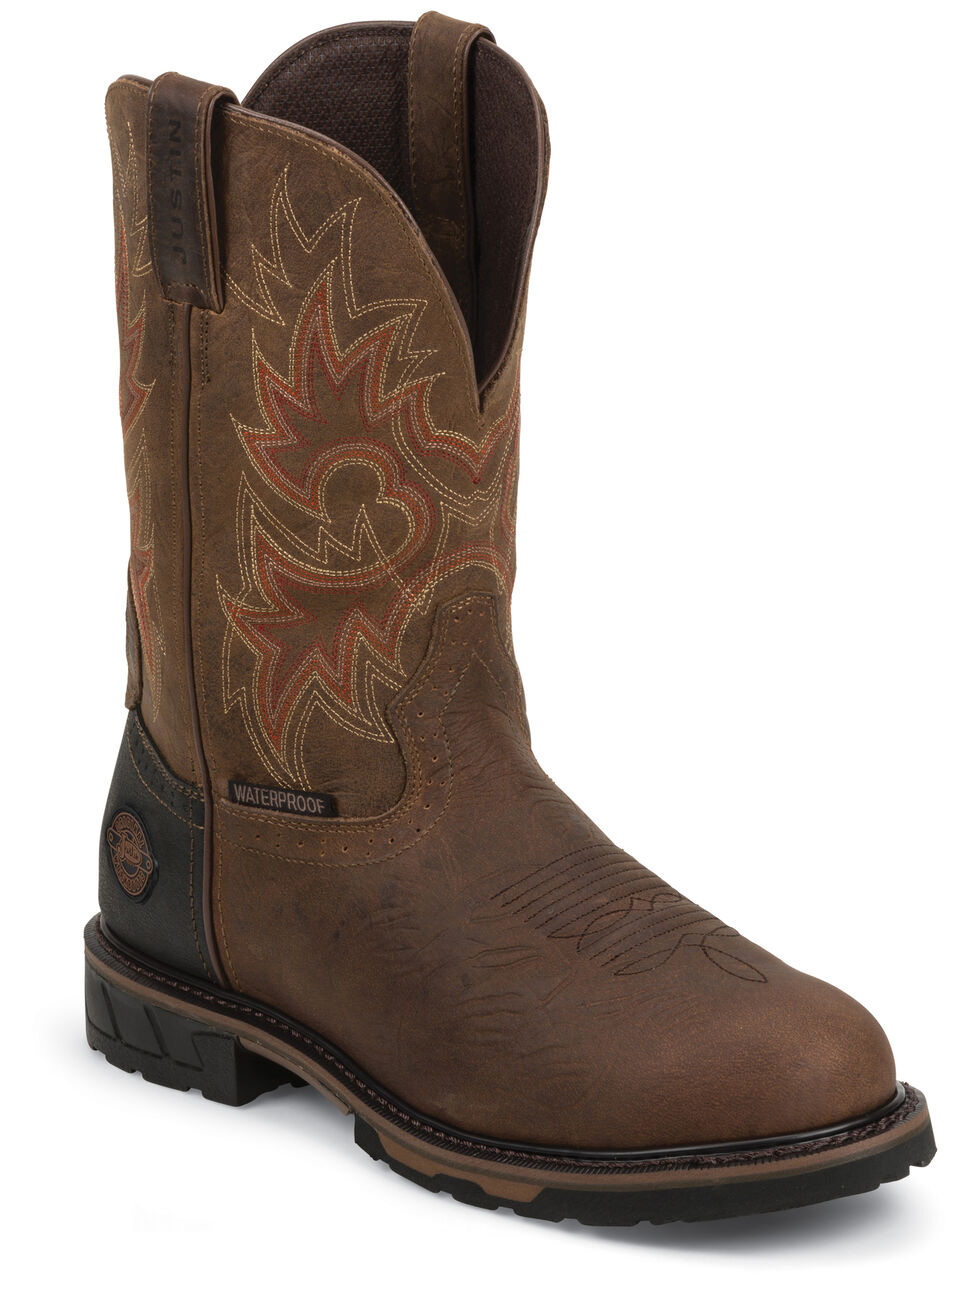 Justin Men's Hybred Rustic Barnwood Waterproof Work Boots - Soft Toe, Barnwood, hi-res